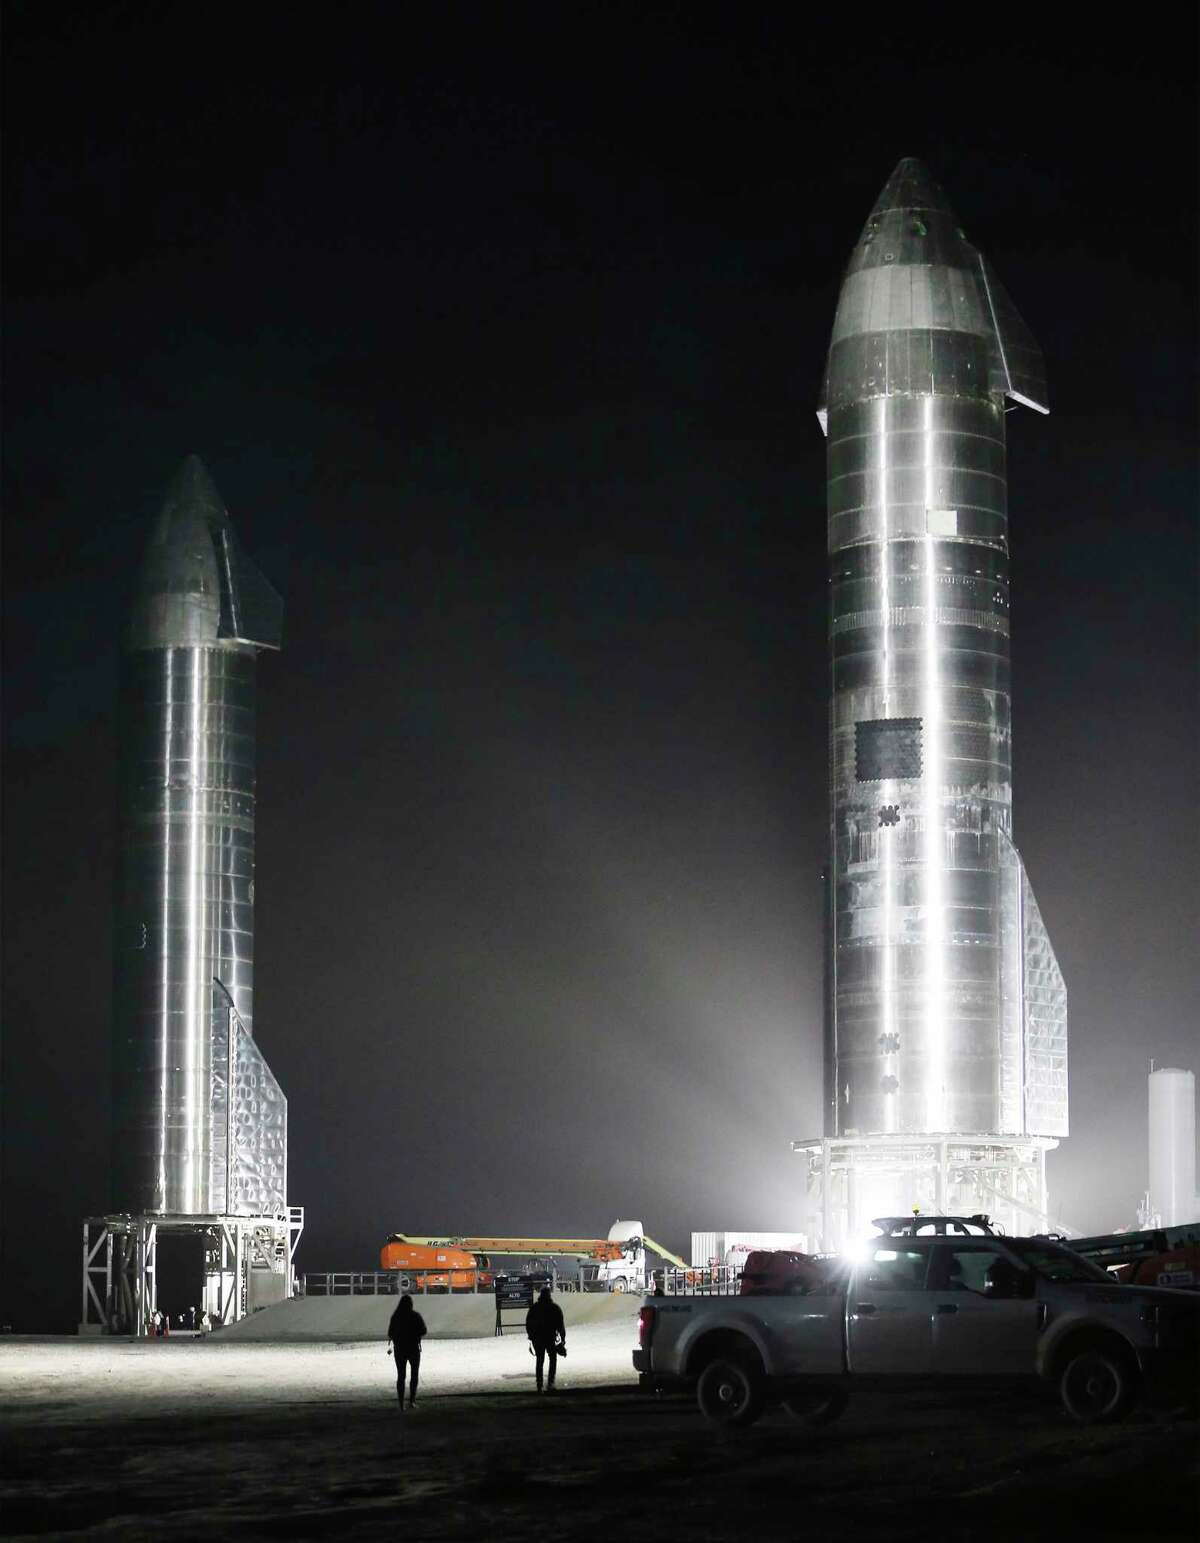 SpaceX personnel walk toward the SpaceX SN9 and SN10 rockets on Sunday, Jan. 31, 2021 at Boca Chica Village, Texas.